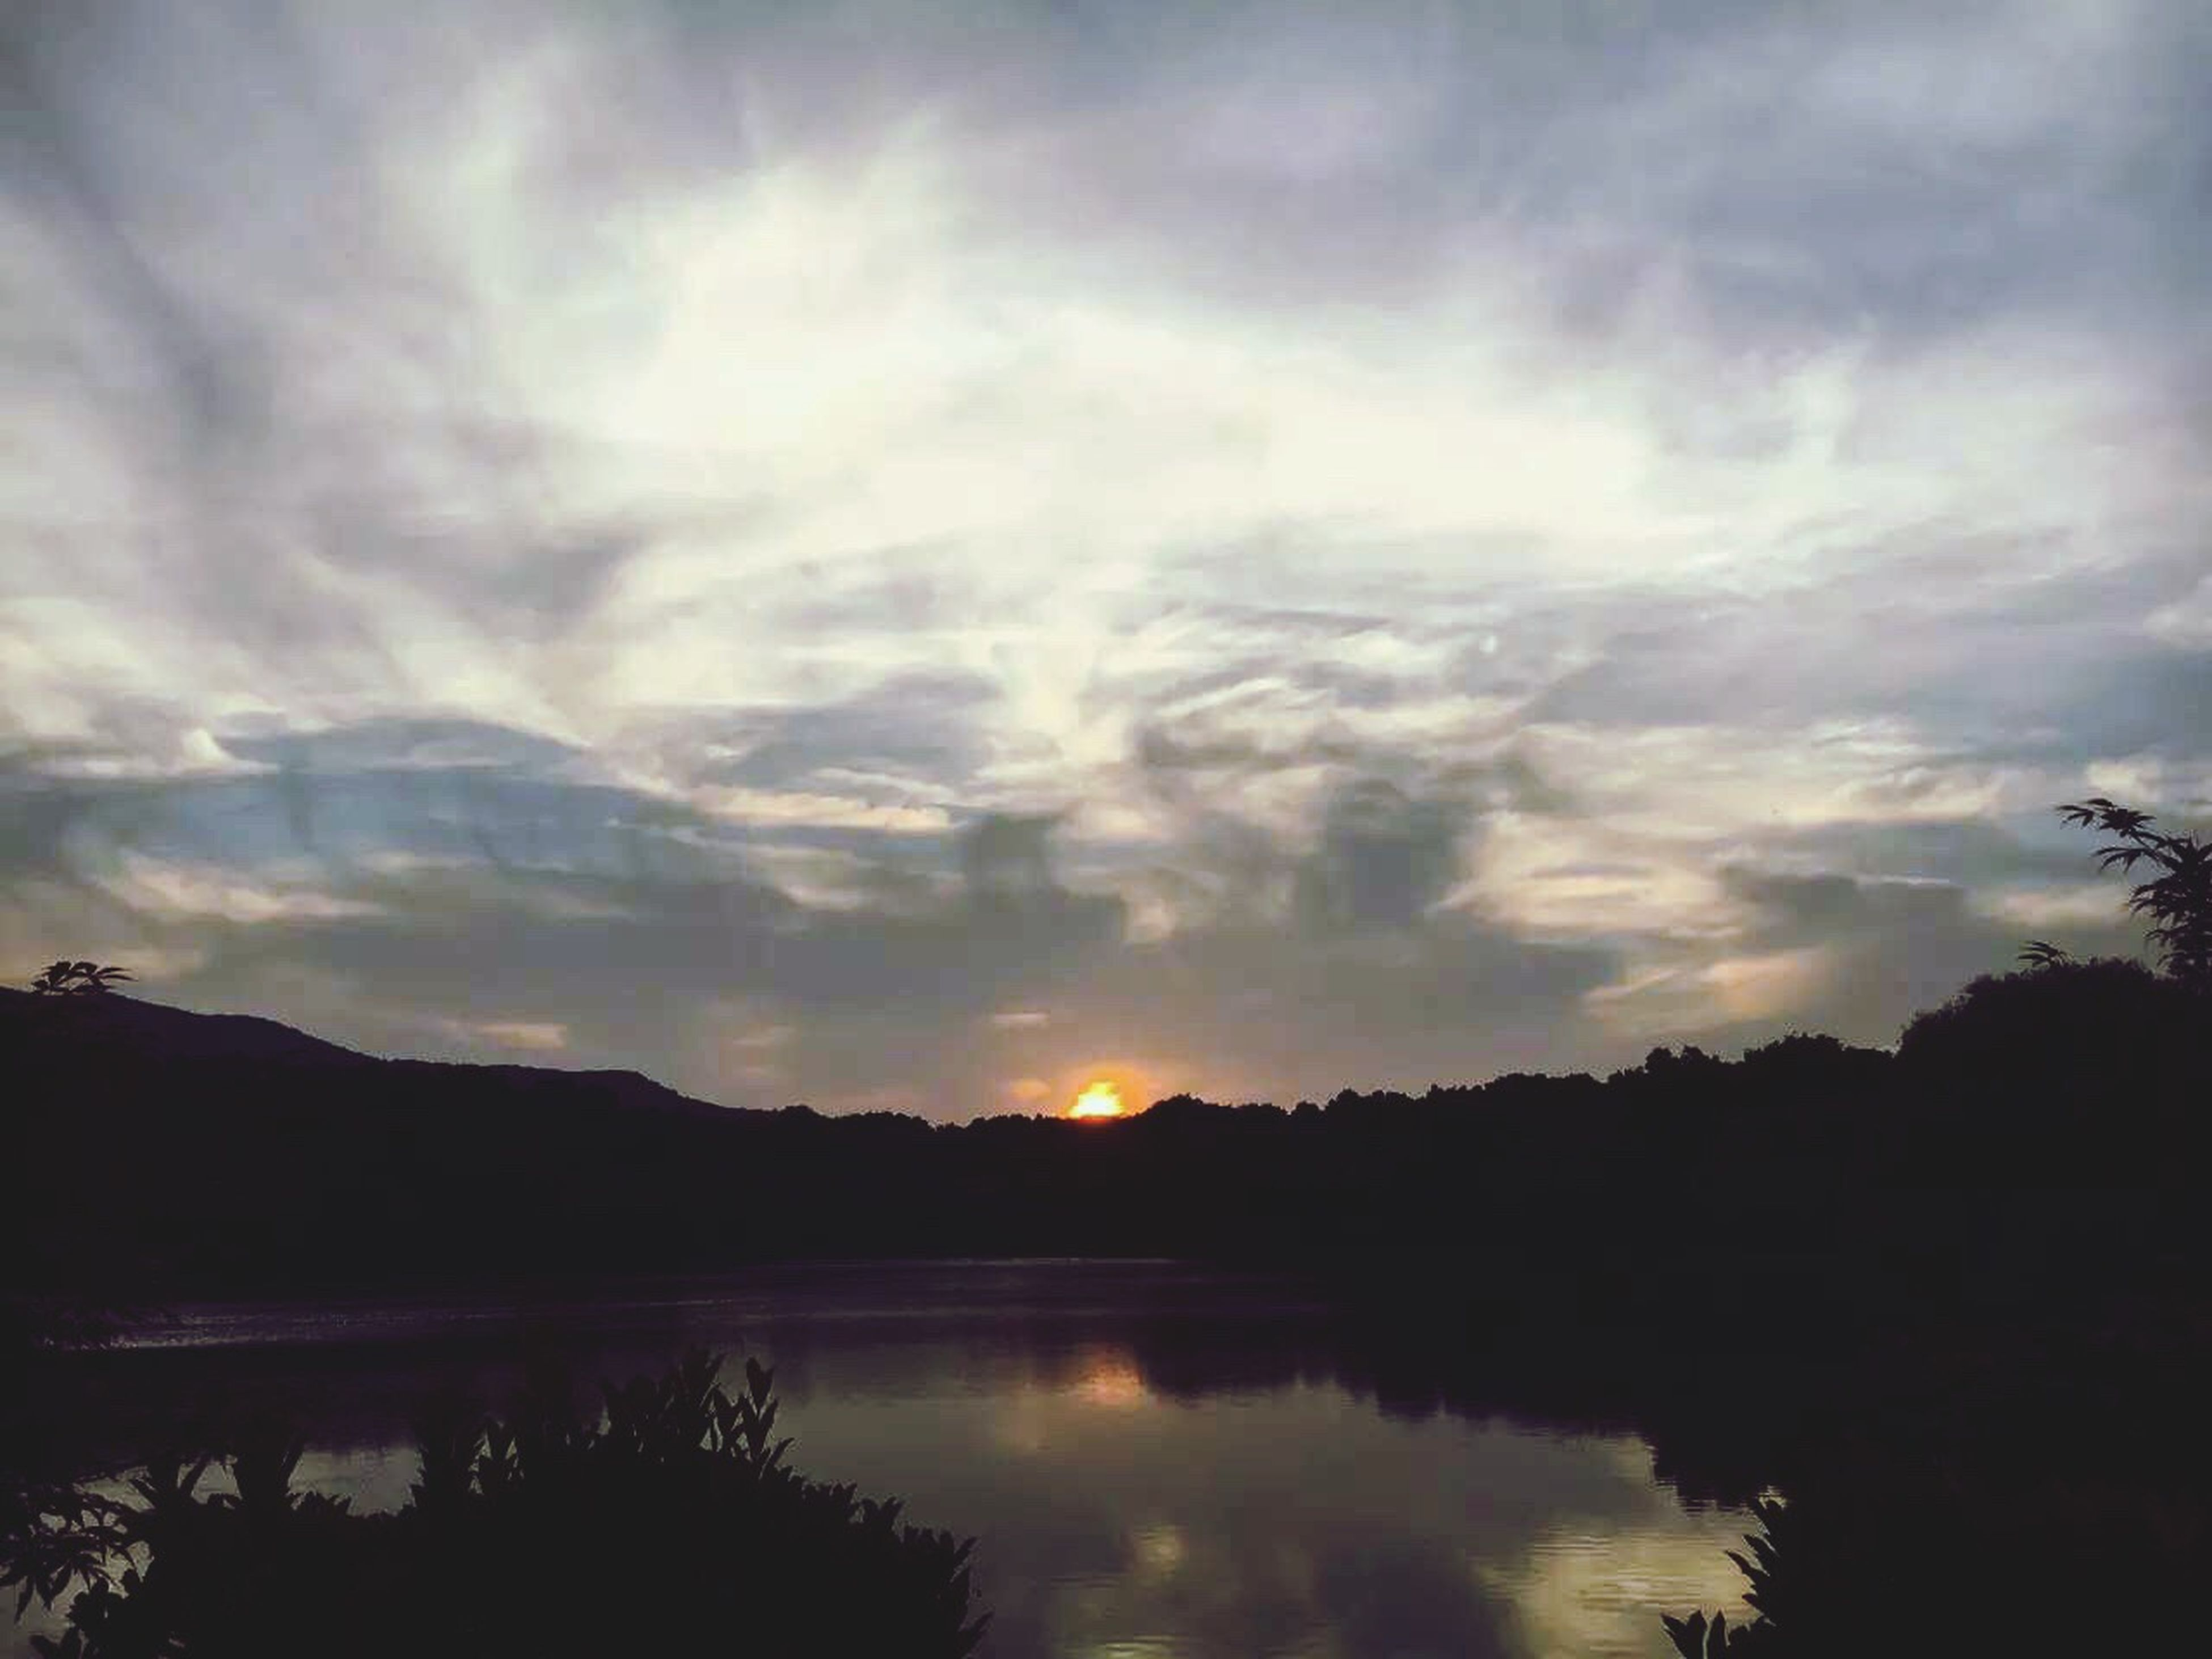 tranquil scene, silhouette, tranquility, sky, scenics, sunset, beauty in nature, water, lake, reflection, cloud - sky, tree, nature, idyllic, cloud, cloudy, calm, non-urban scene, outdoors, dusk